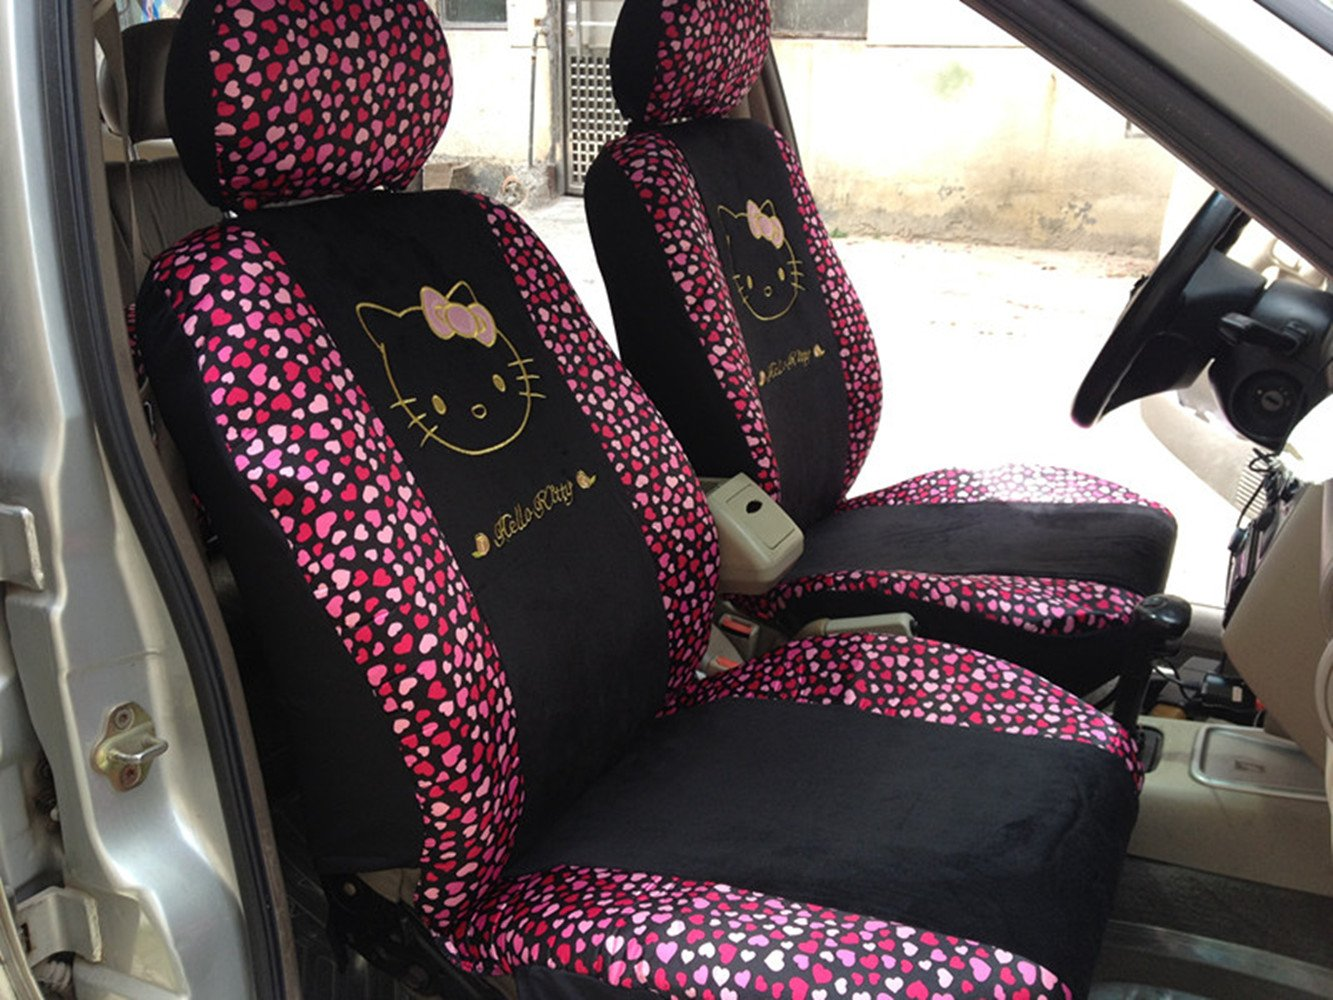 Black/Peach Bow Front Rear Car Seat Cushion Cover Black&Gold 18pcs Full Set Needlework by GH8 (Image #2)